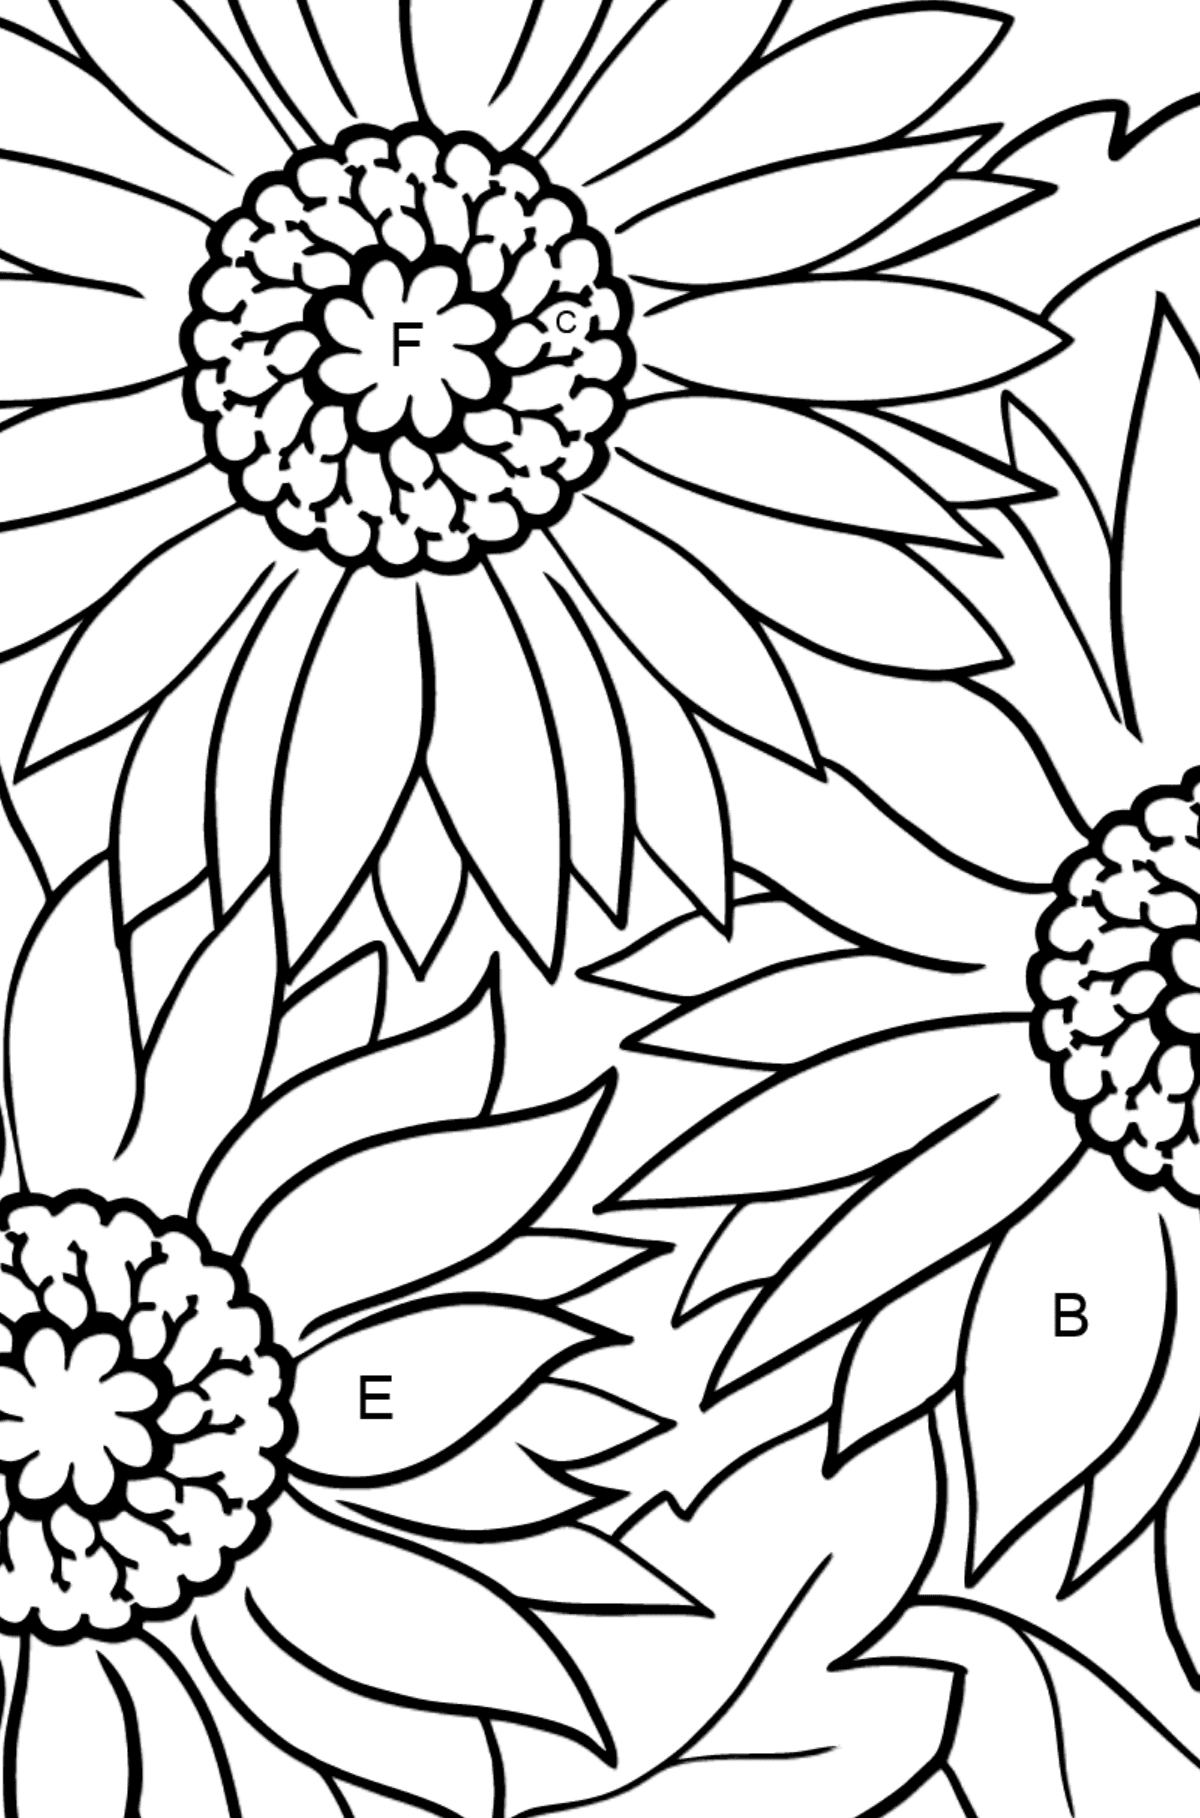 Coloring Flowers for the Youngest Children - Pink Gerbera - Coloring by Letters for Kids